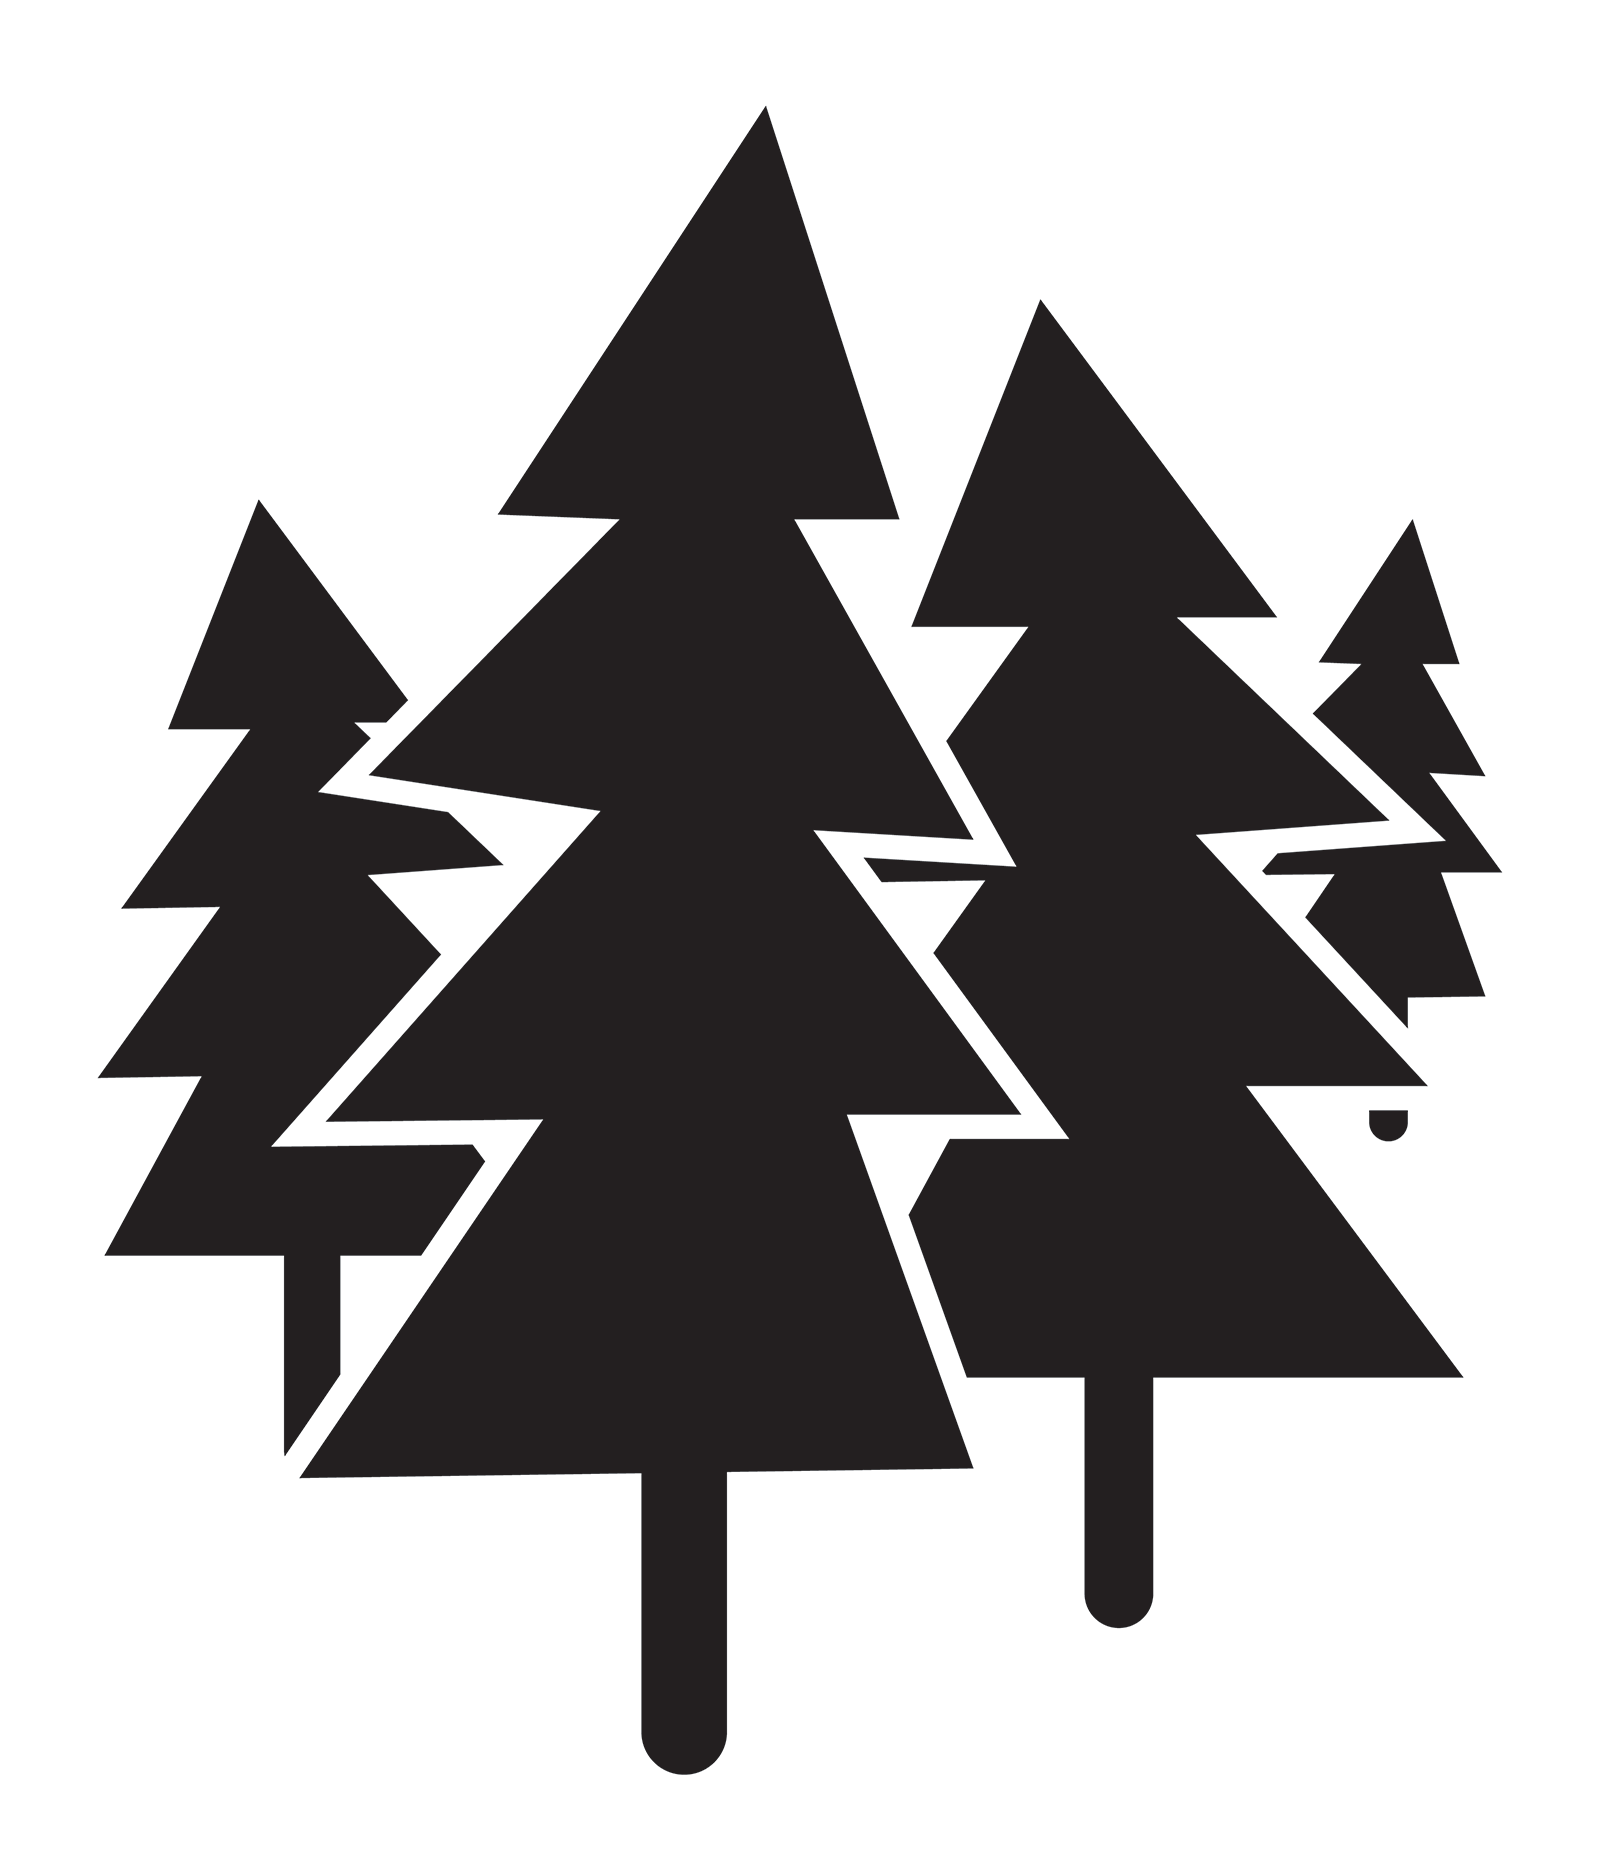 cc-blacktrees-whiteoutline.png